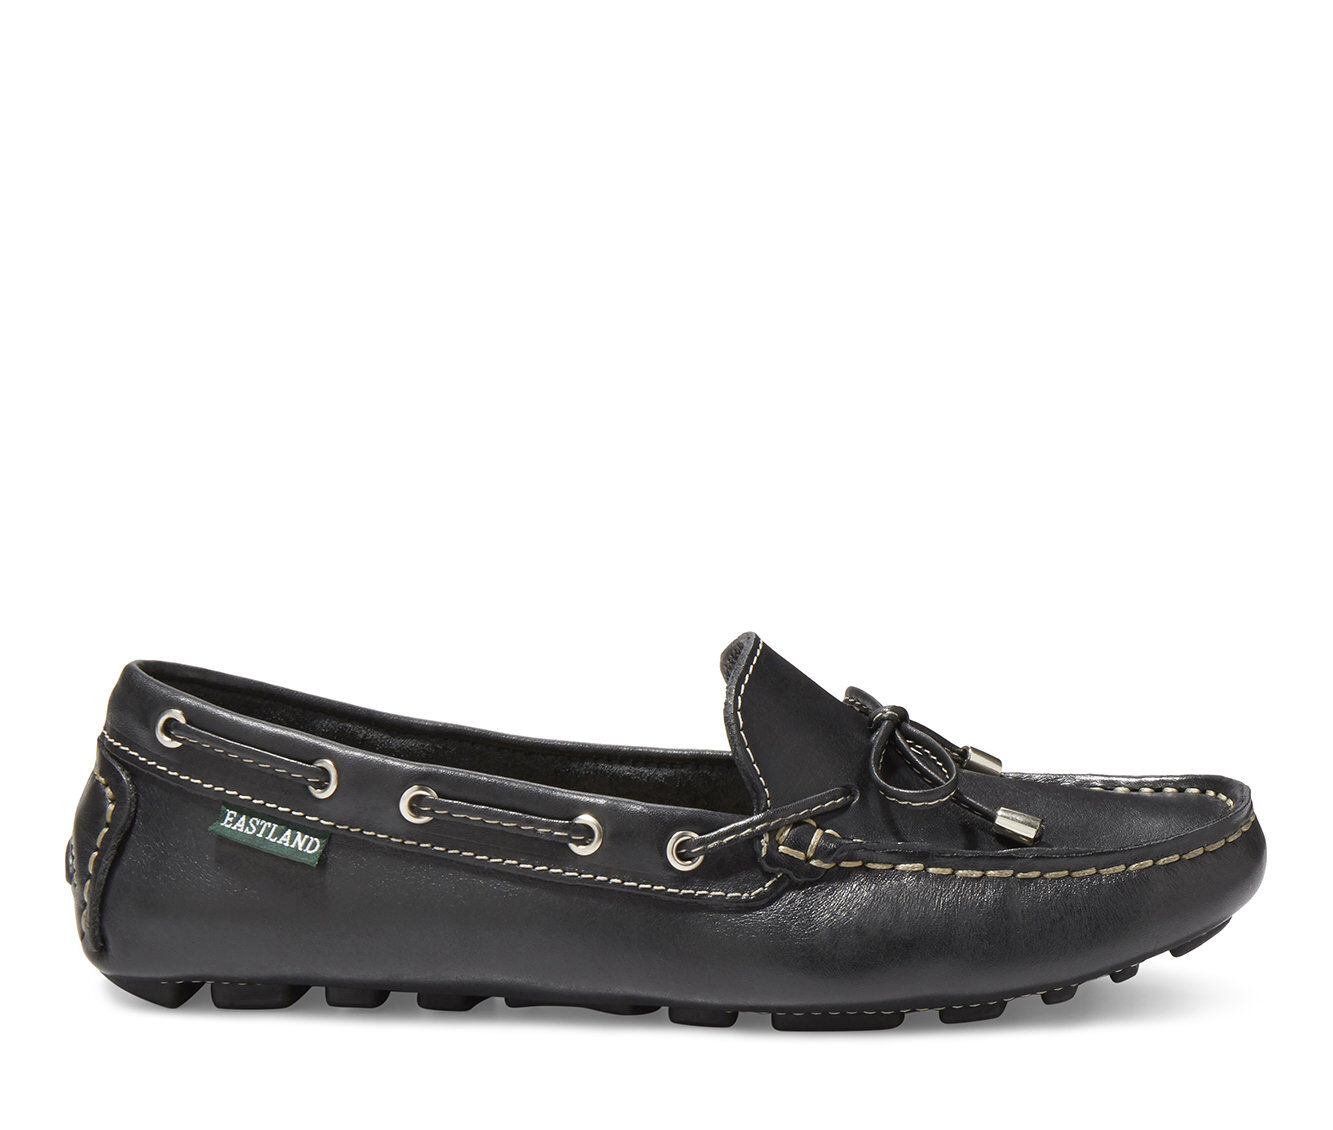 new style Women's Eastland Marcella Moccasins Black